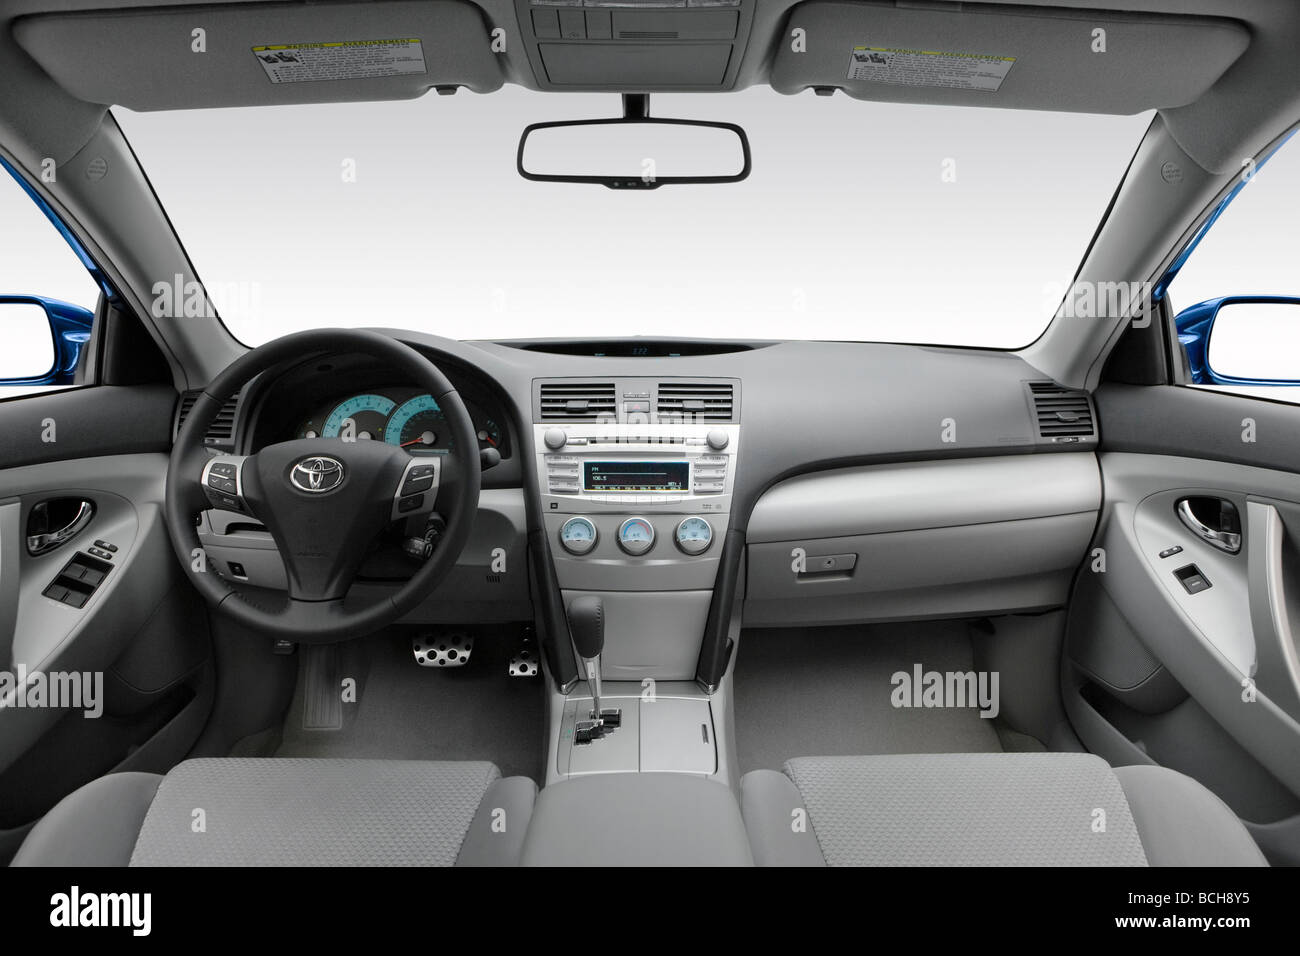 2010 toyota camry se in blue dashboard center console gear stock photo royalty free image. Black Bedroom Furniture Sets. Home Design Ideas